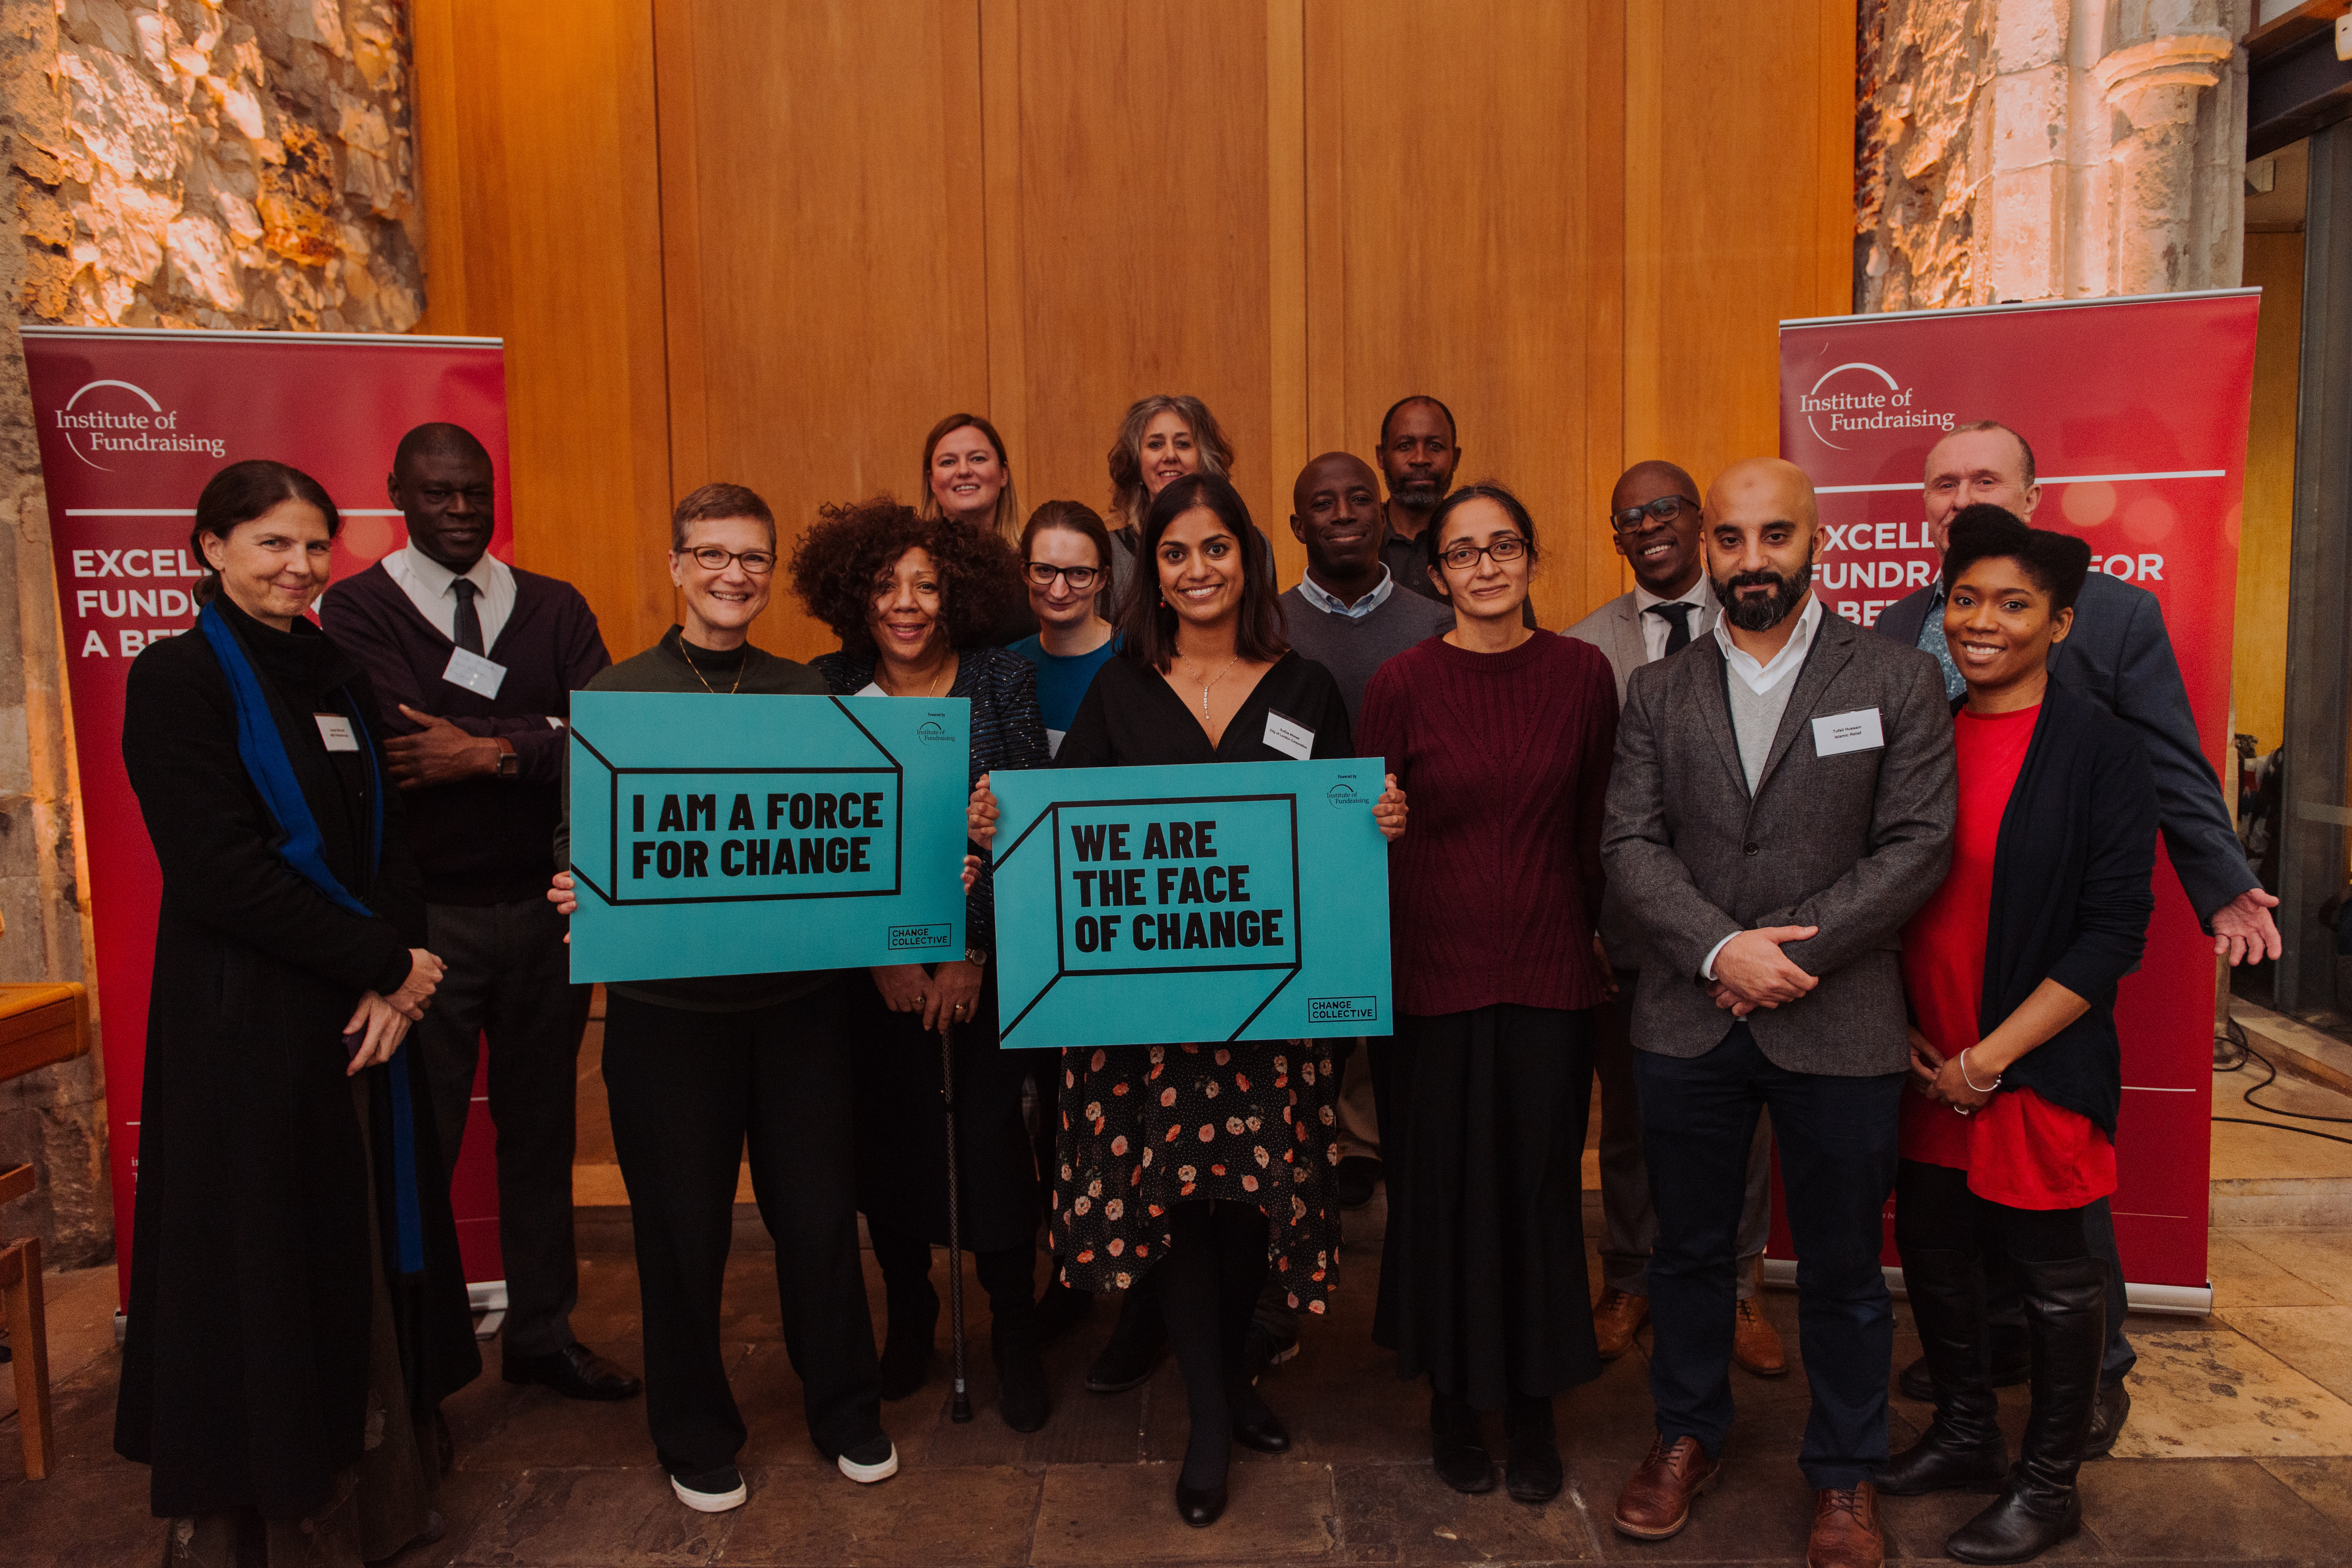 A diverse group of fundraisers together. One is holding a board with the words I am a force for change and another holding a board saying we are the face of change.